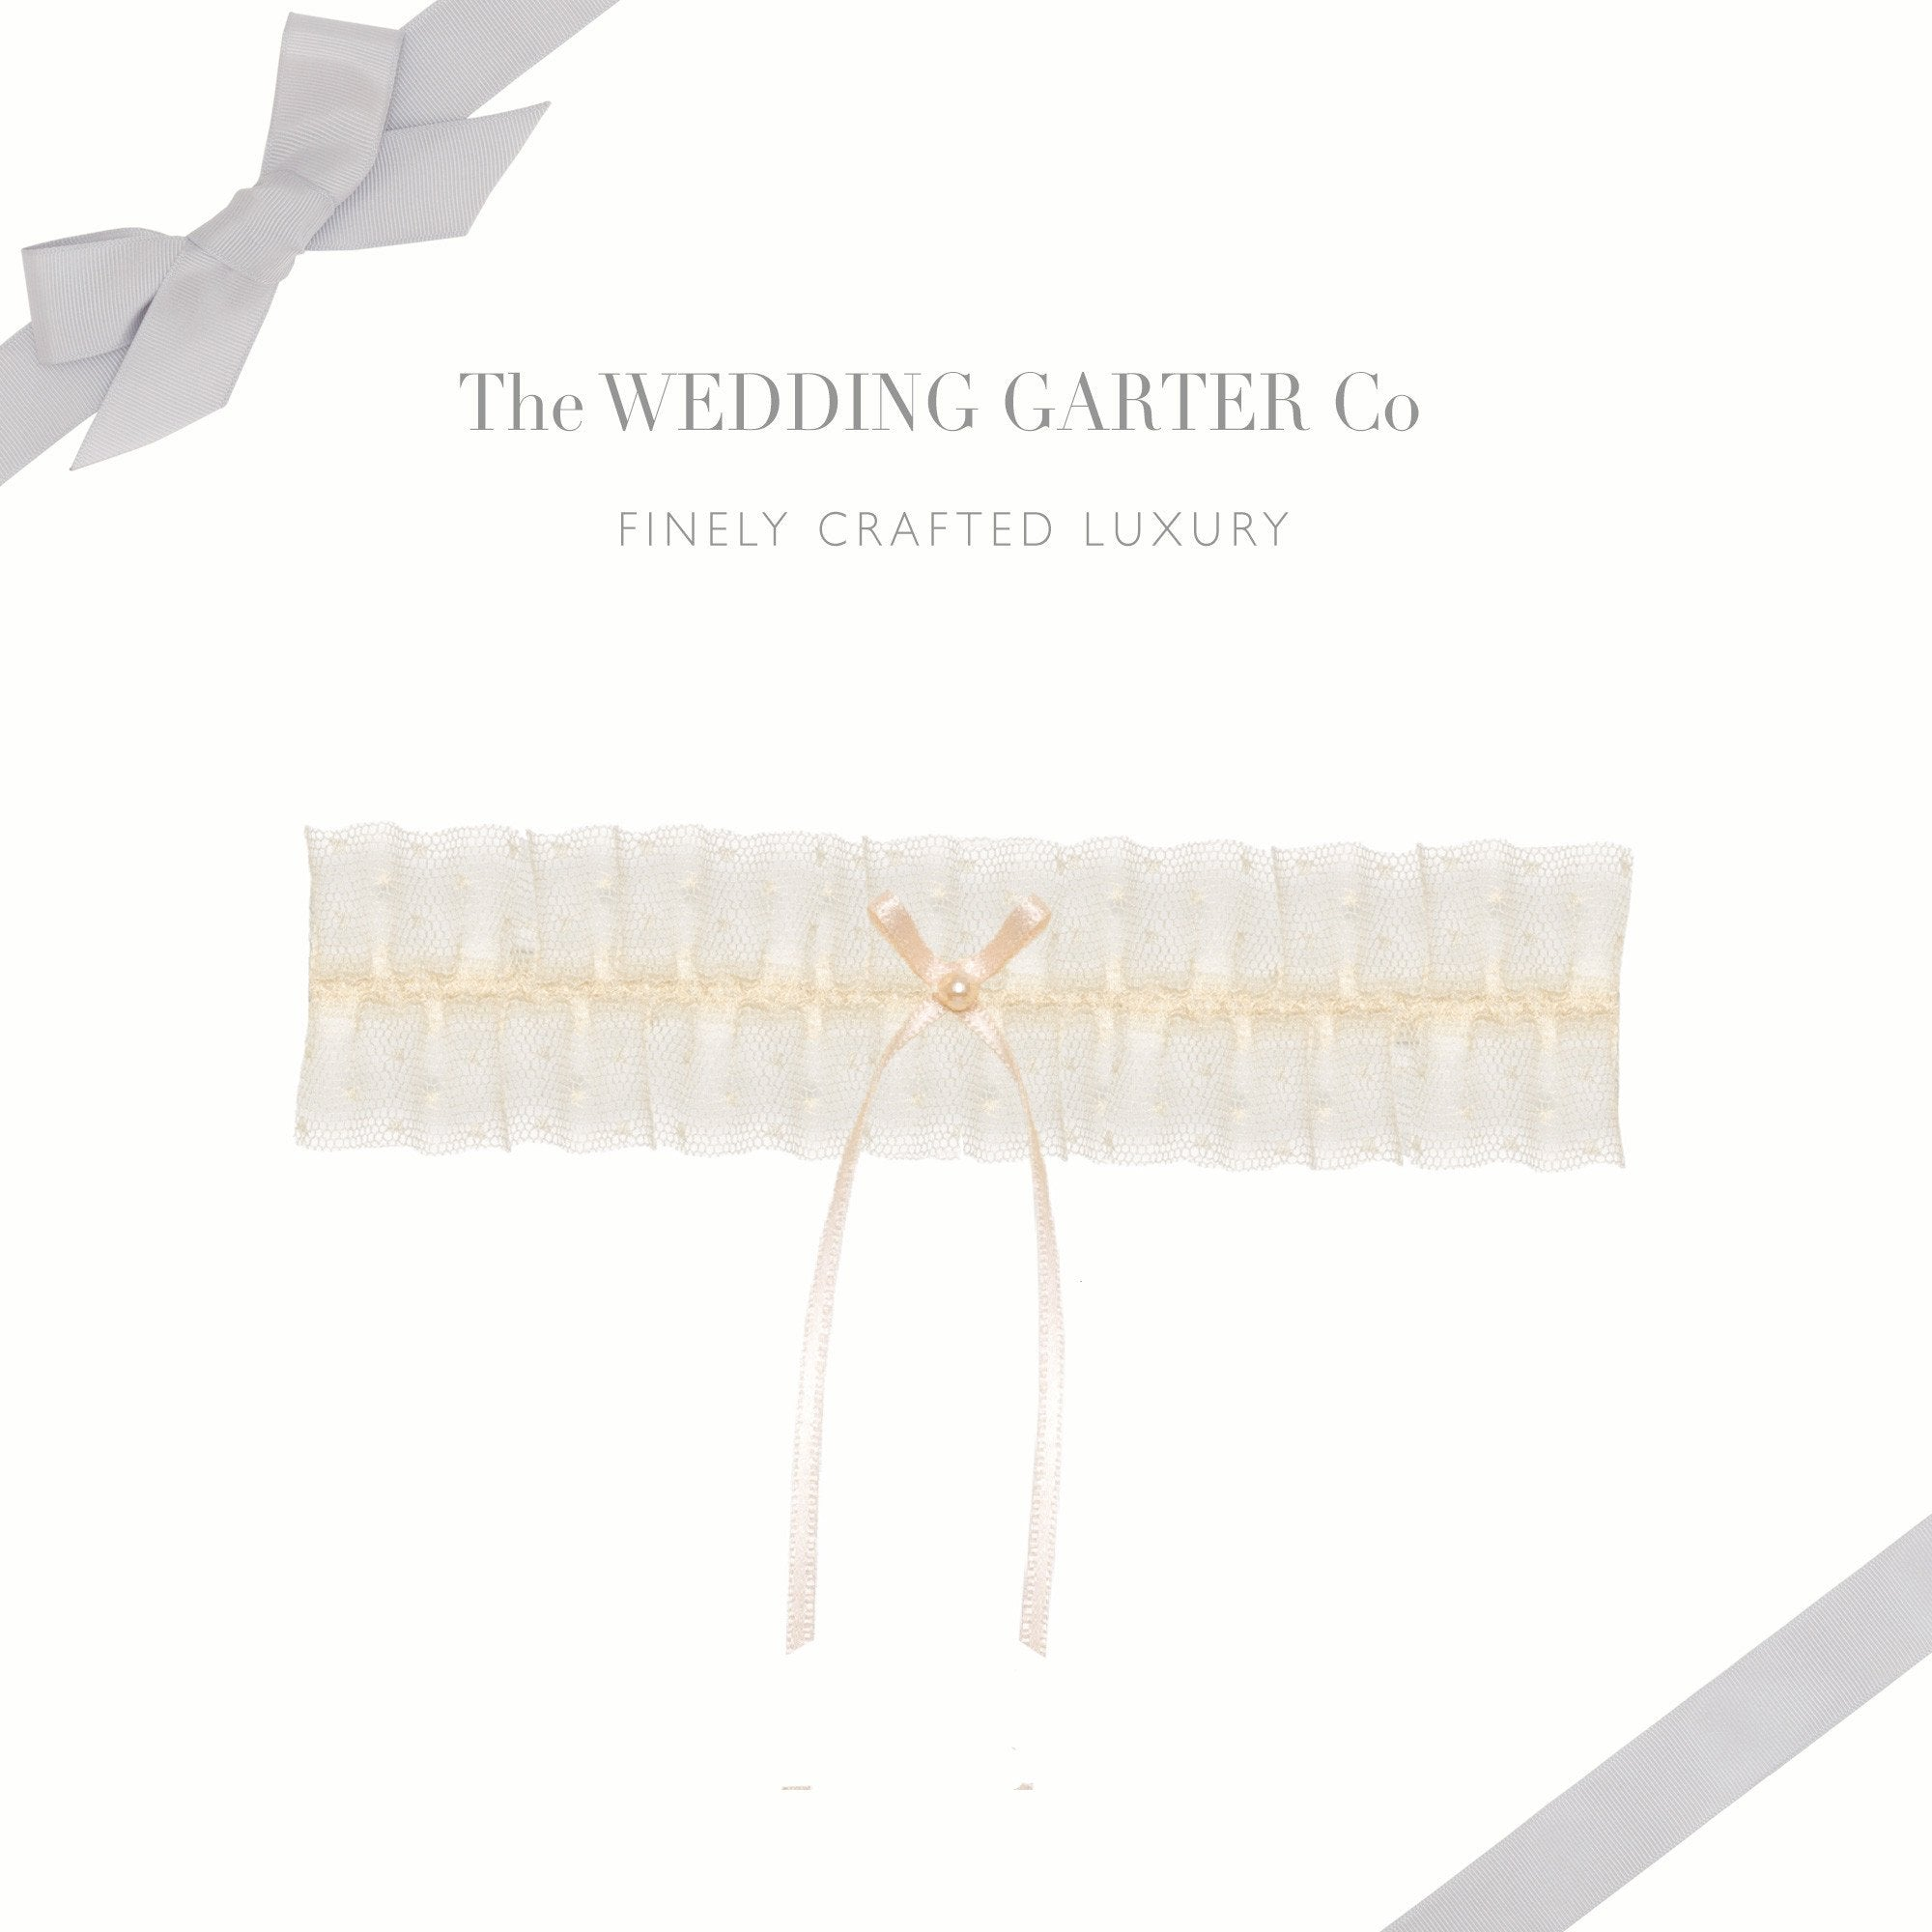 Polka dot tulle wedding garter